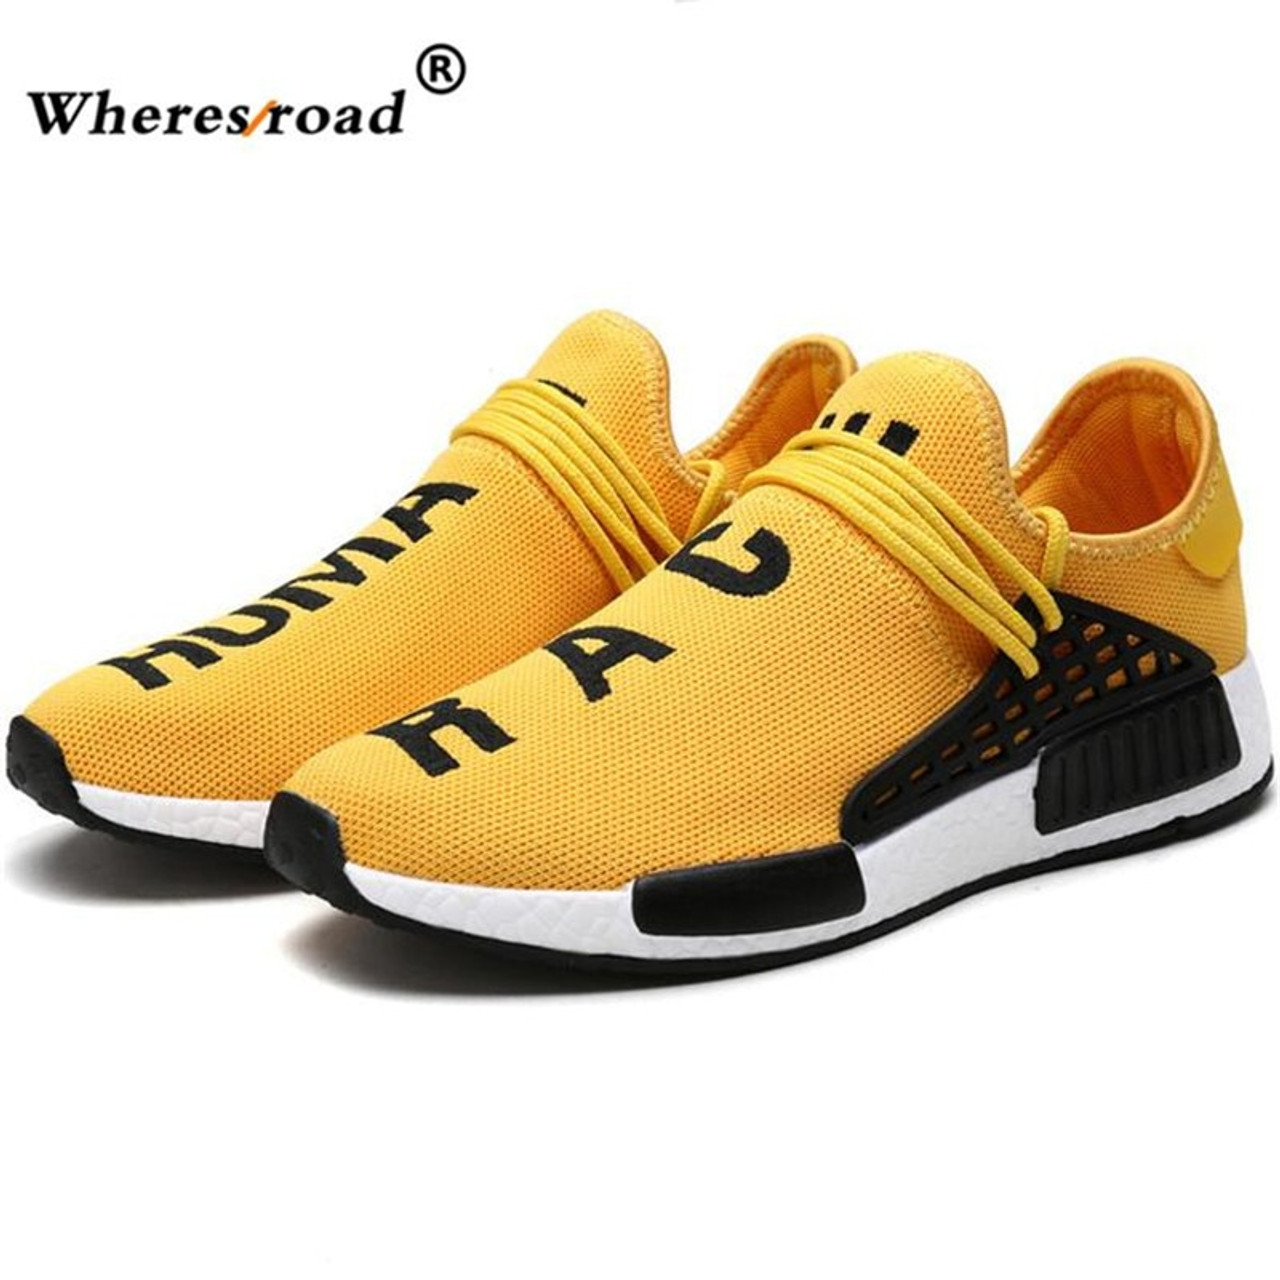 64eb71848 2018 wheresroad Human Race Yellow Casual Shoes Men s Comfortable Fashion  Sneakers Light Summer Spring Man Ultra ...